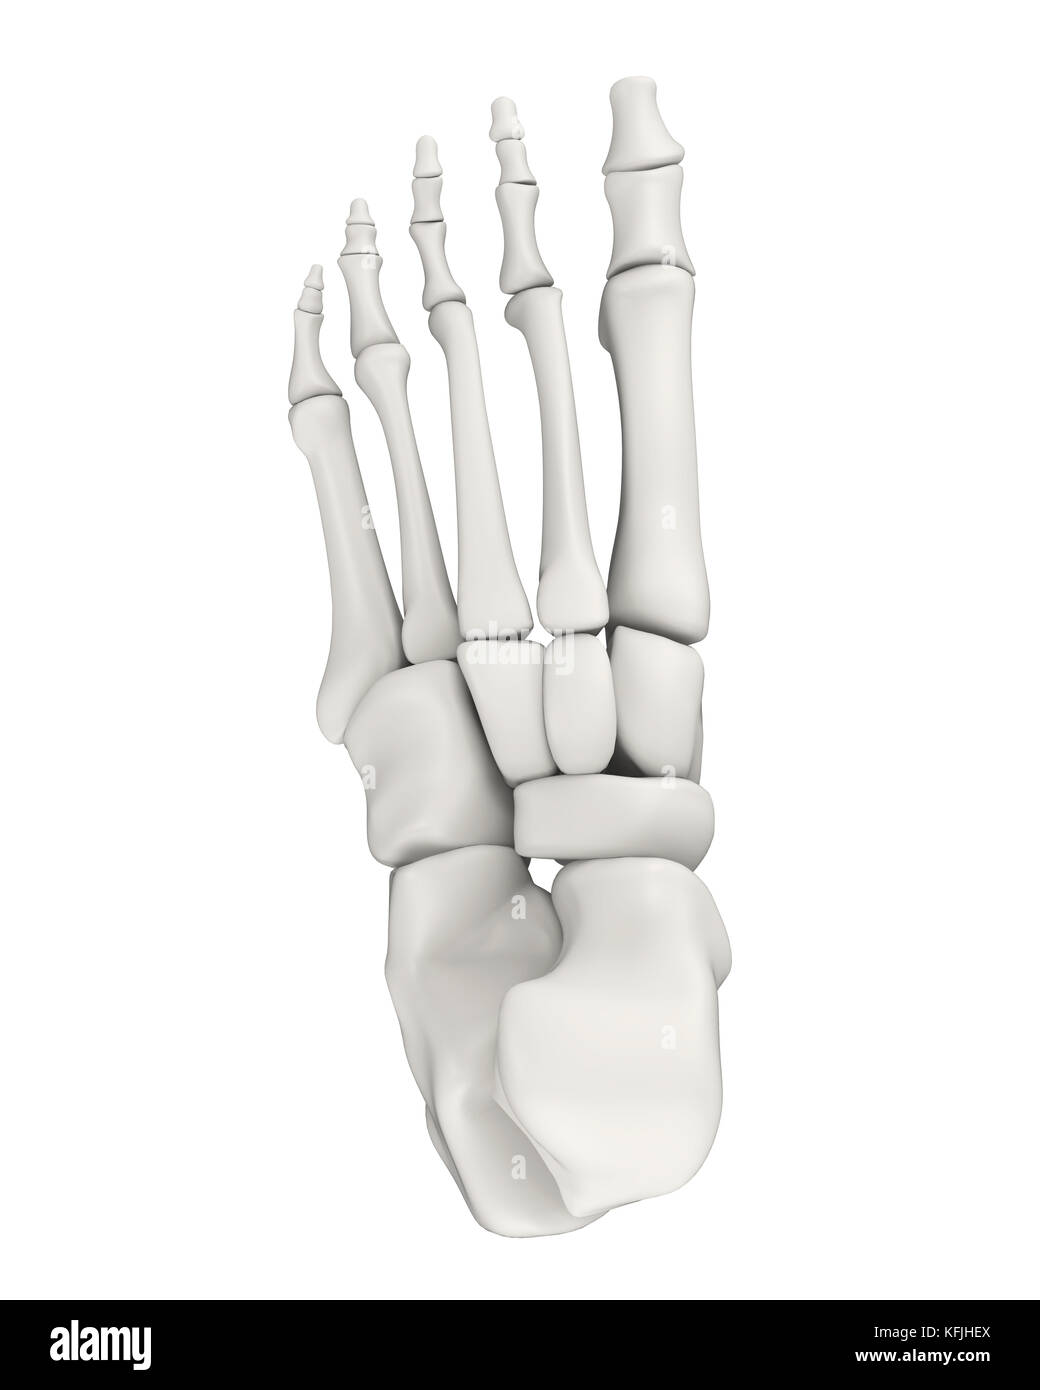 Foot Bones Anatomy Isolated Stock Photo: 164522034 - Alamy